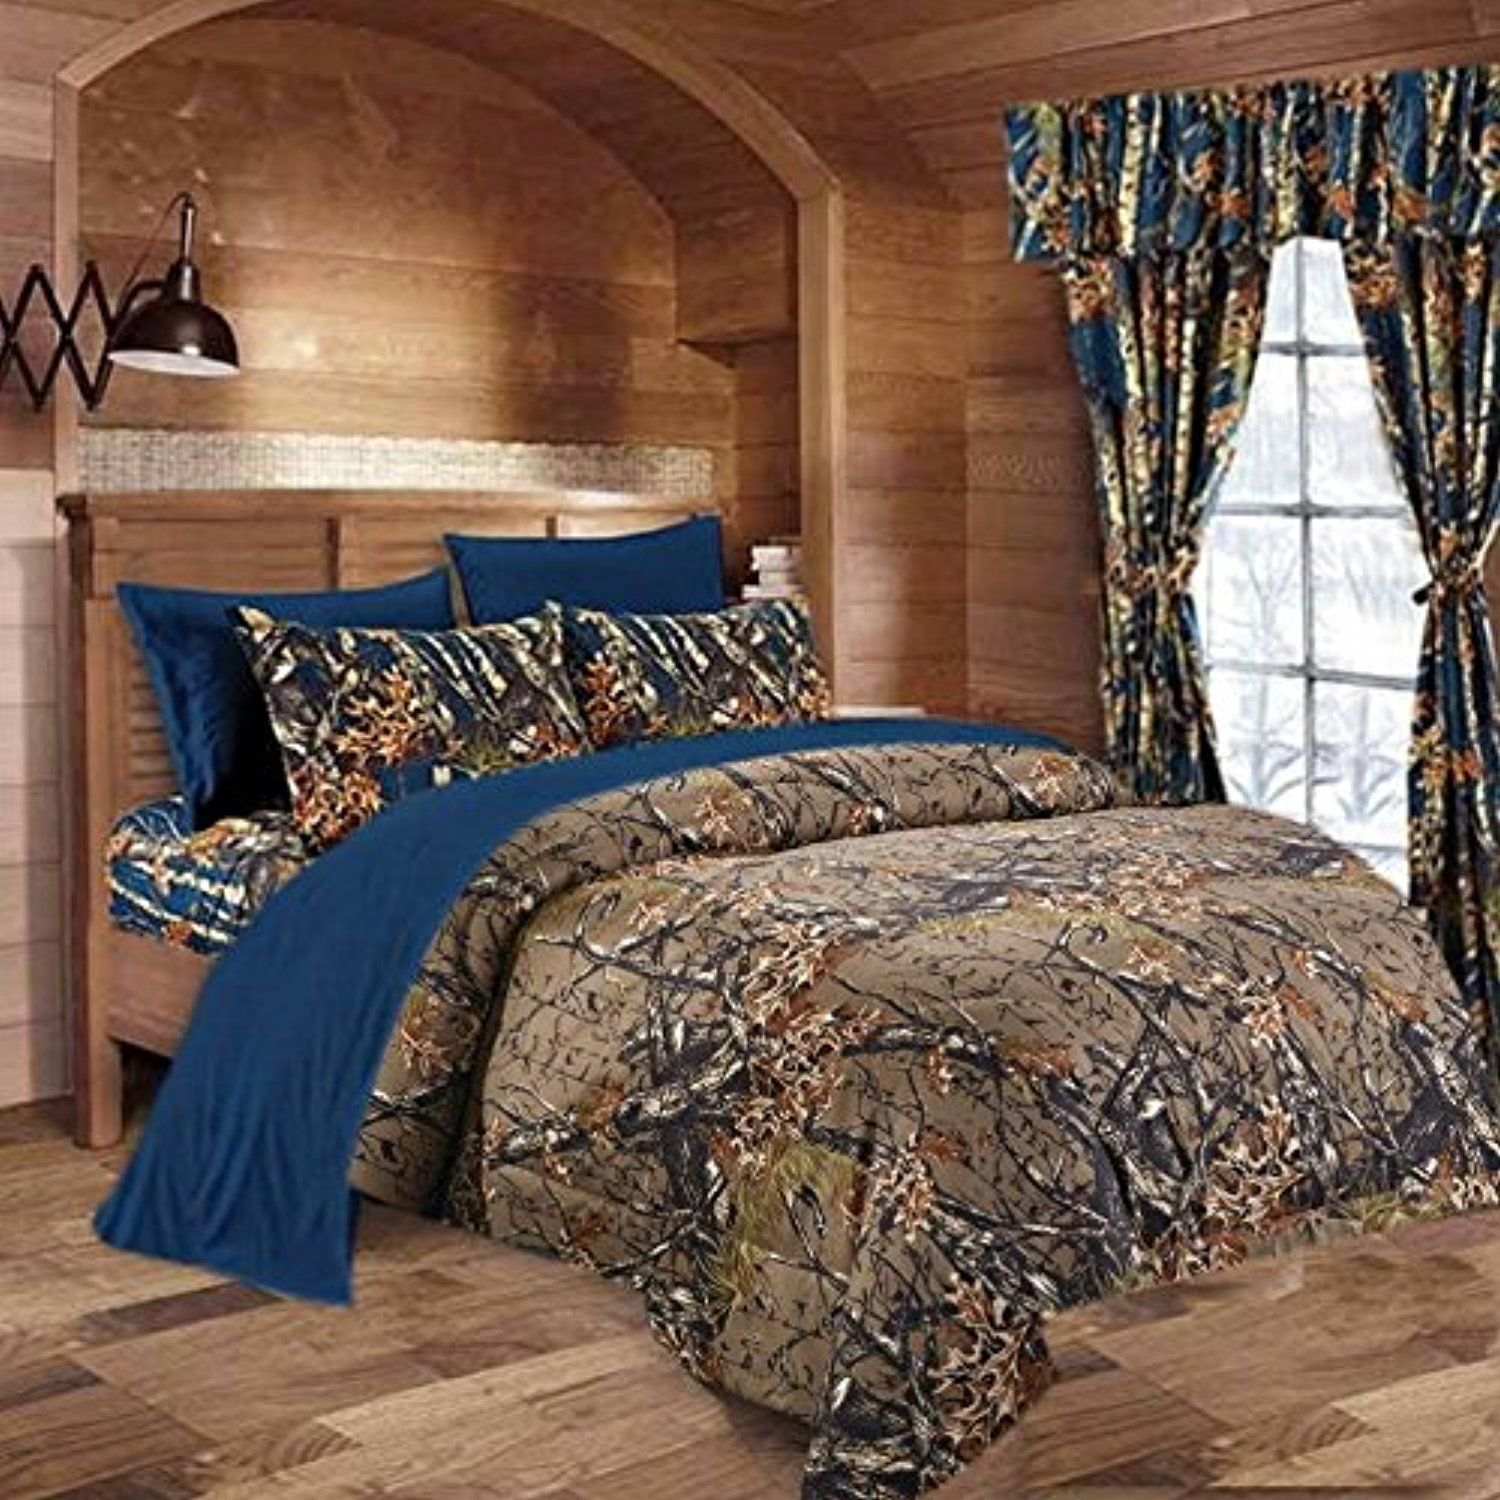 12 pc Lime Woods Camo King Size Comforter sheets pillowcases and curtains set